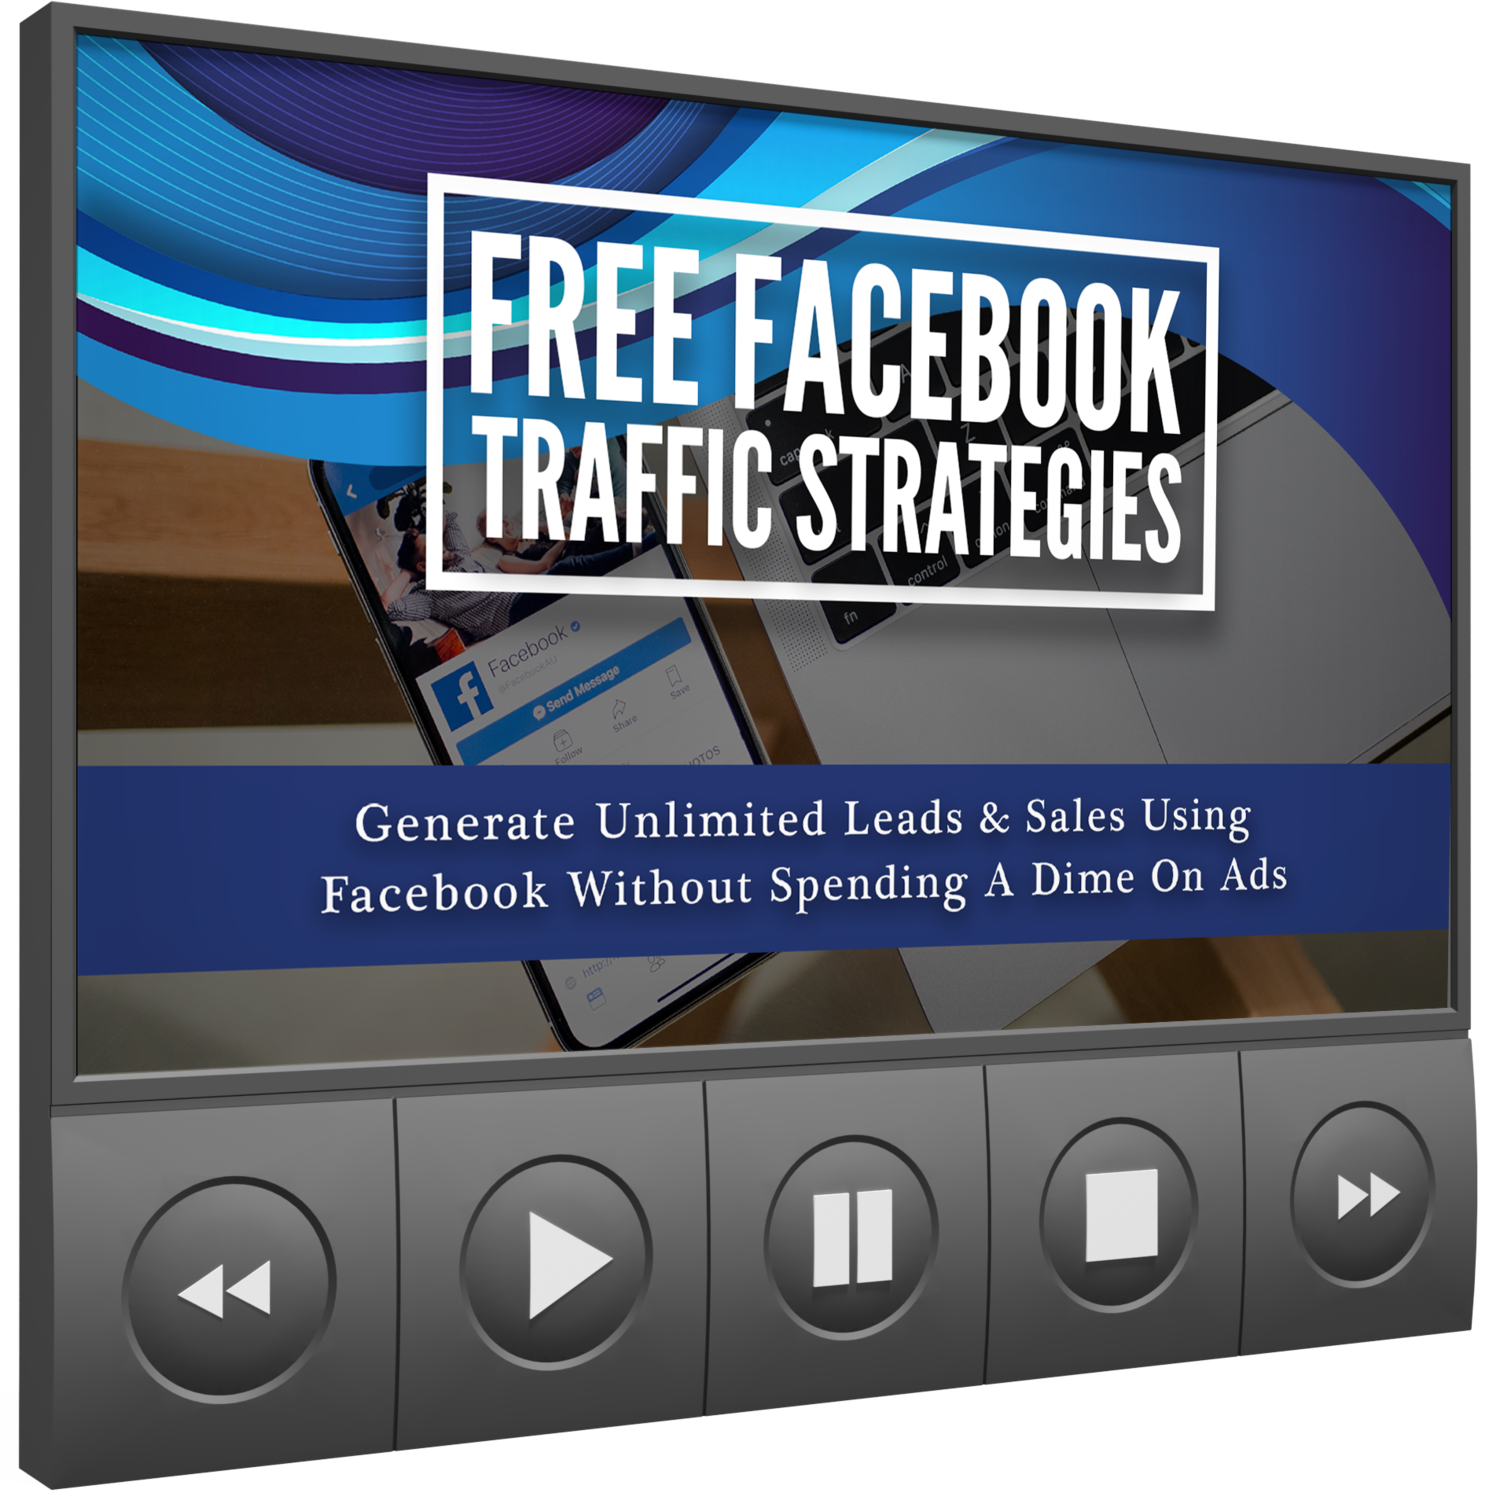 How To Free Facebook Traffic Strategies Video